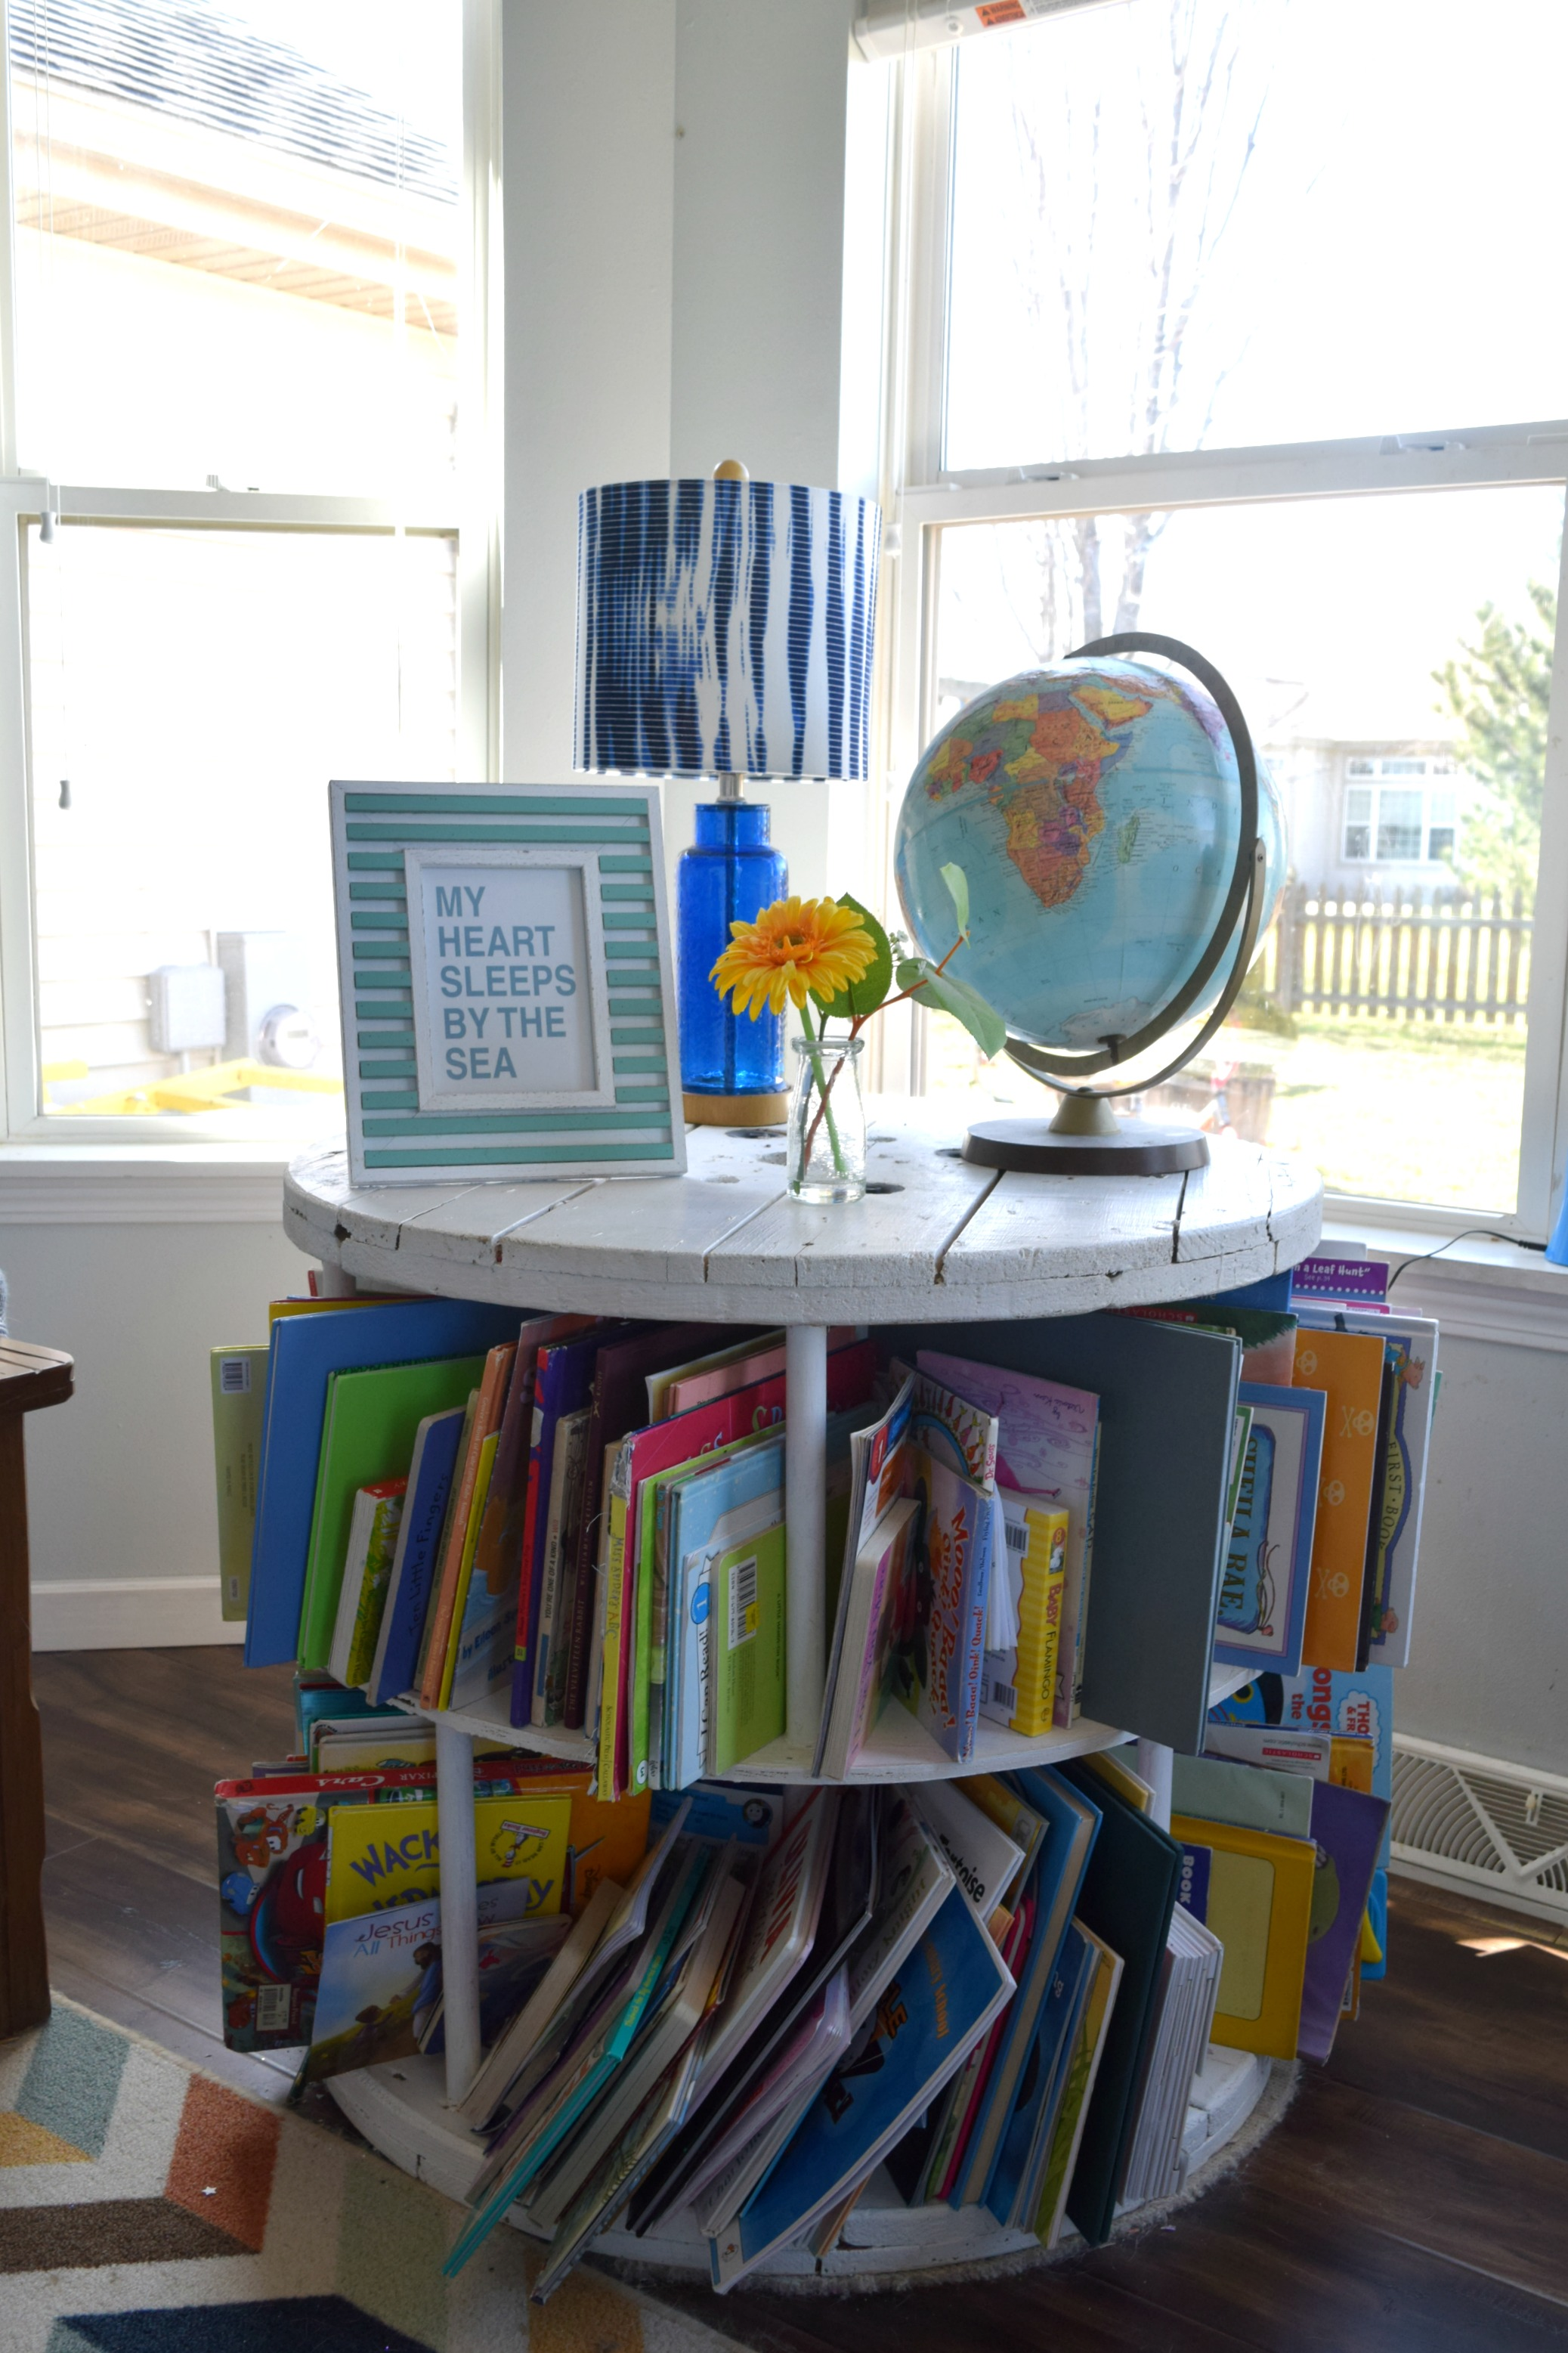 Some Simple Spring Home Decor Ideas Is To Add Color. Even If It Is A Simple  Picture Frame Or New Lamp Shade. When I Think Of Spring It Is All About The  ...